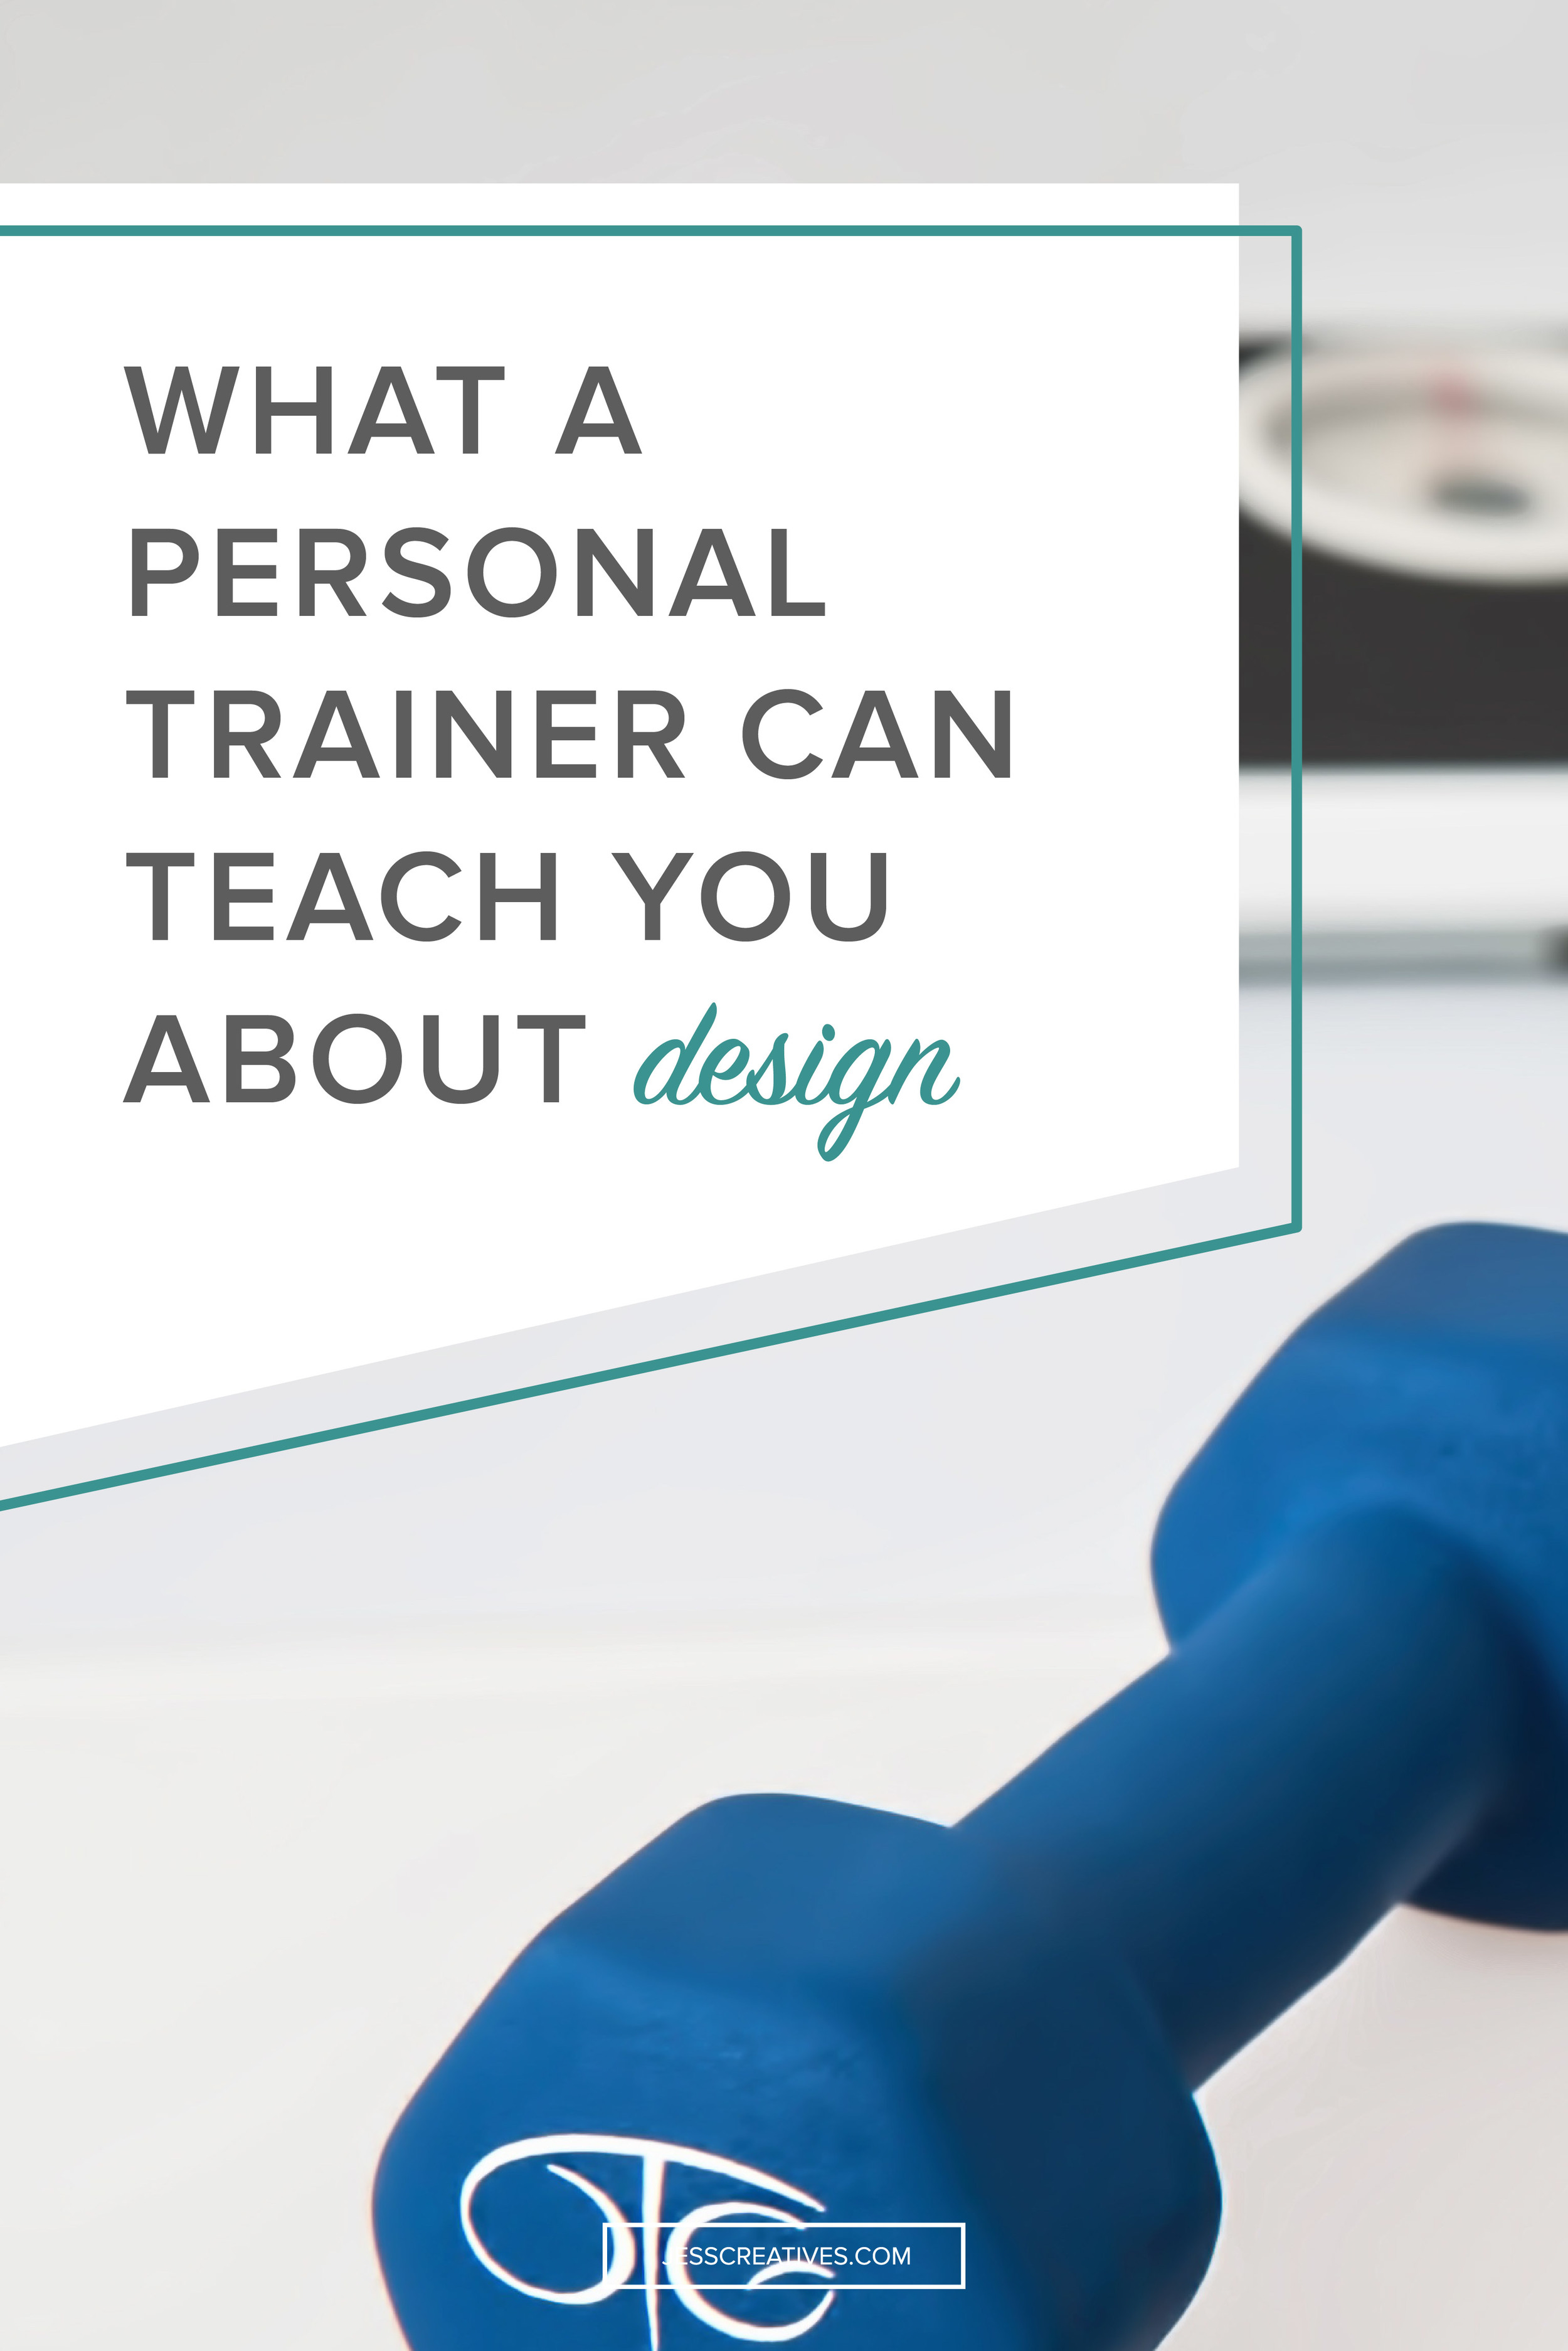 What a personal trainer can teach you about design